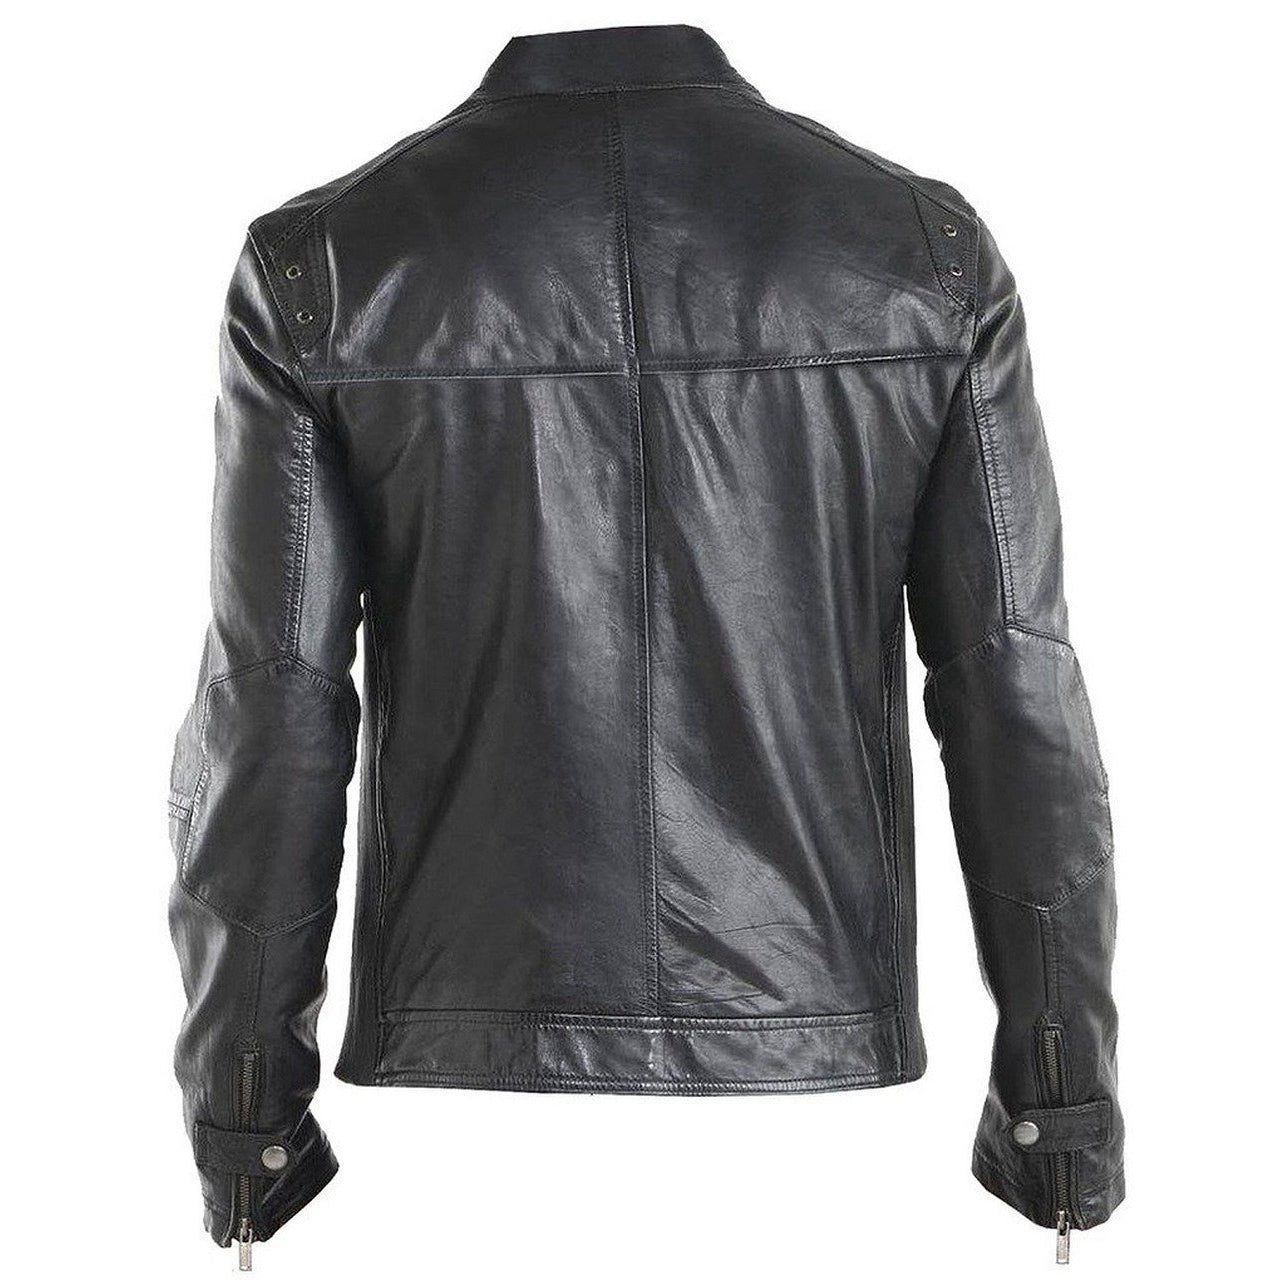 Regular Fit Black Biker leather motorcycle jacket for Men - Leather Jacket